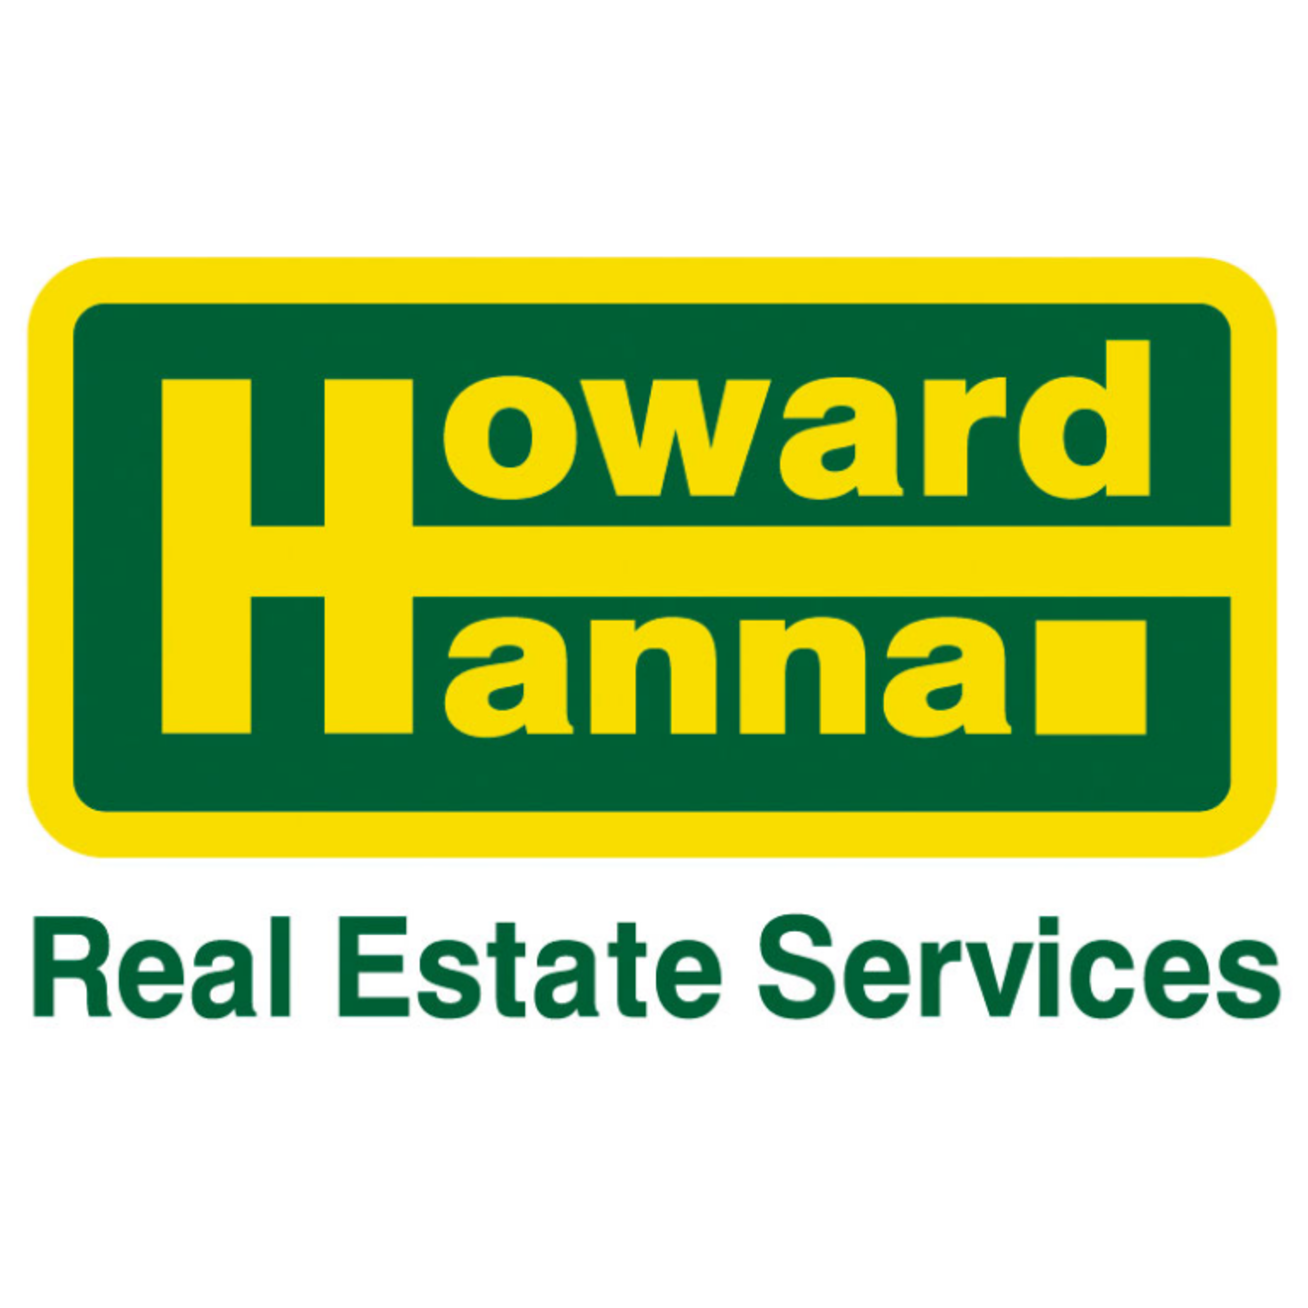 Natalie Young | Howard Hanna Real Estate Services - Canton, OH - Real Estate Agents